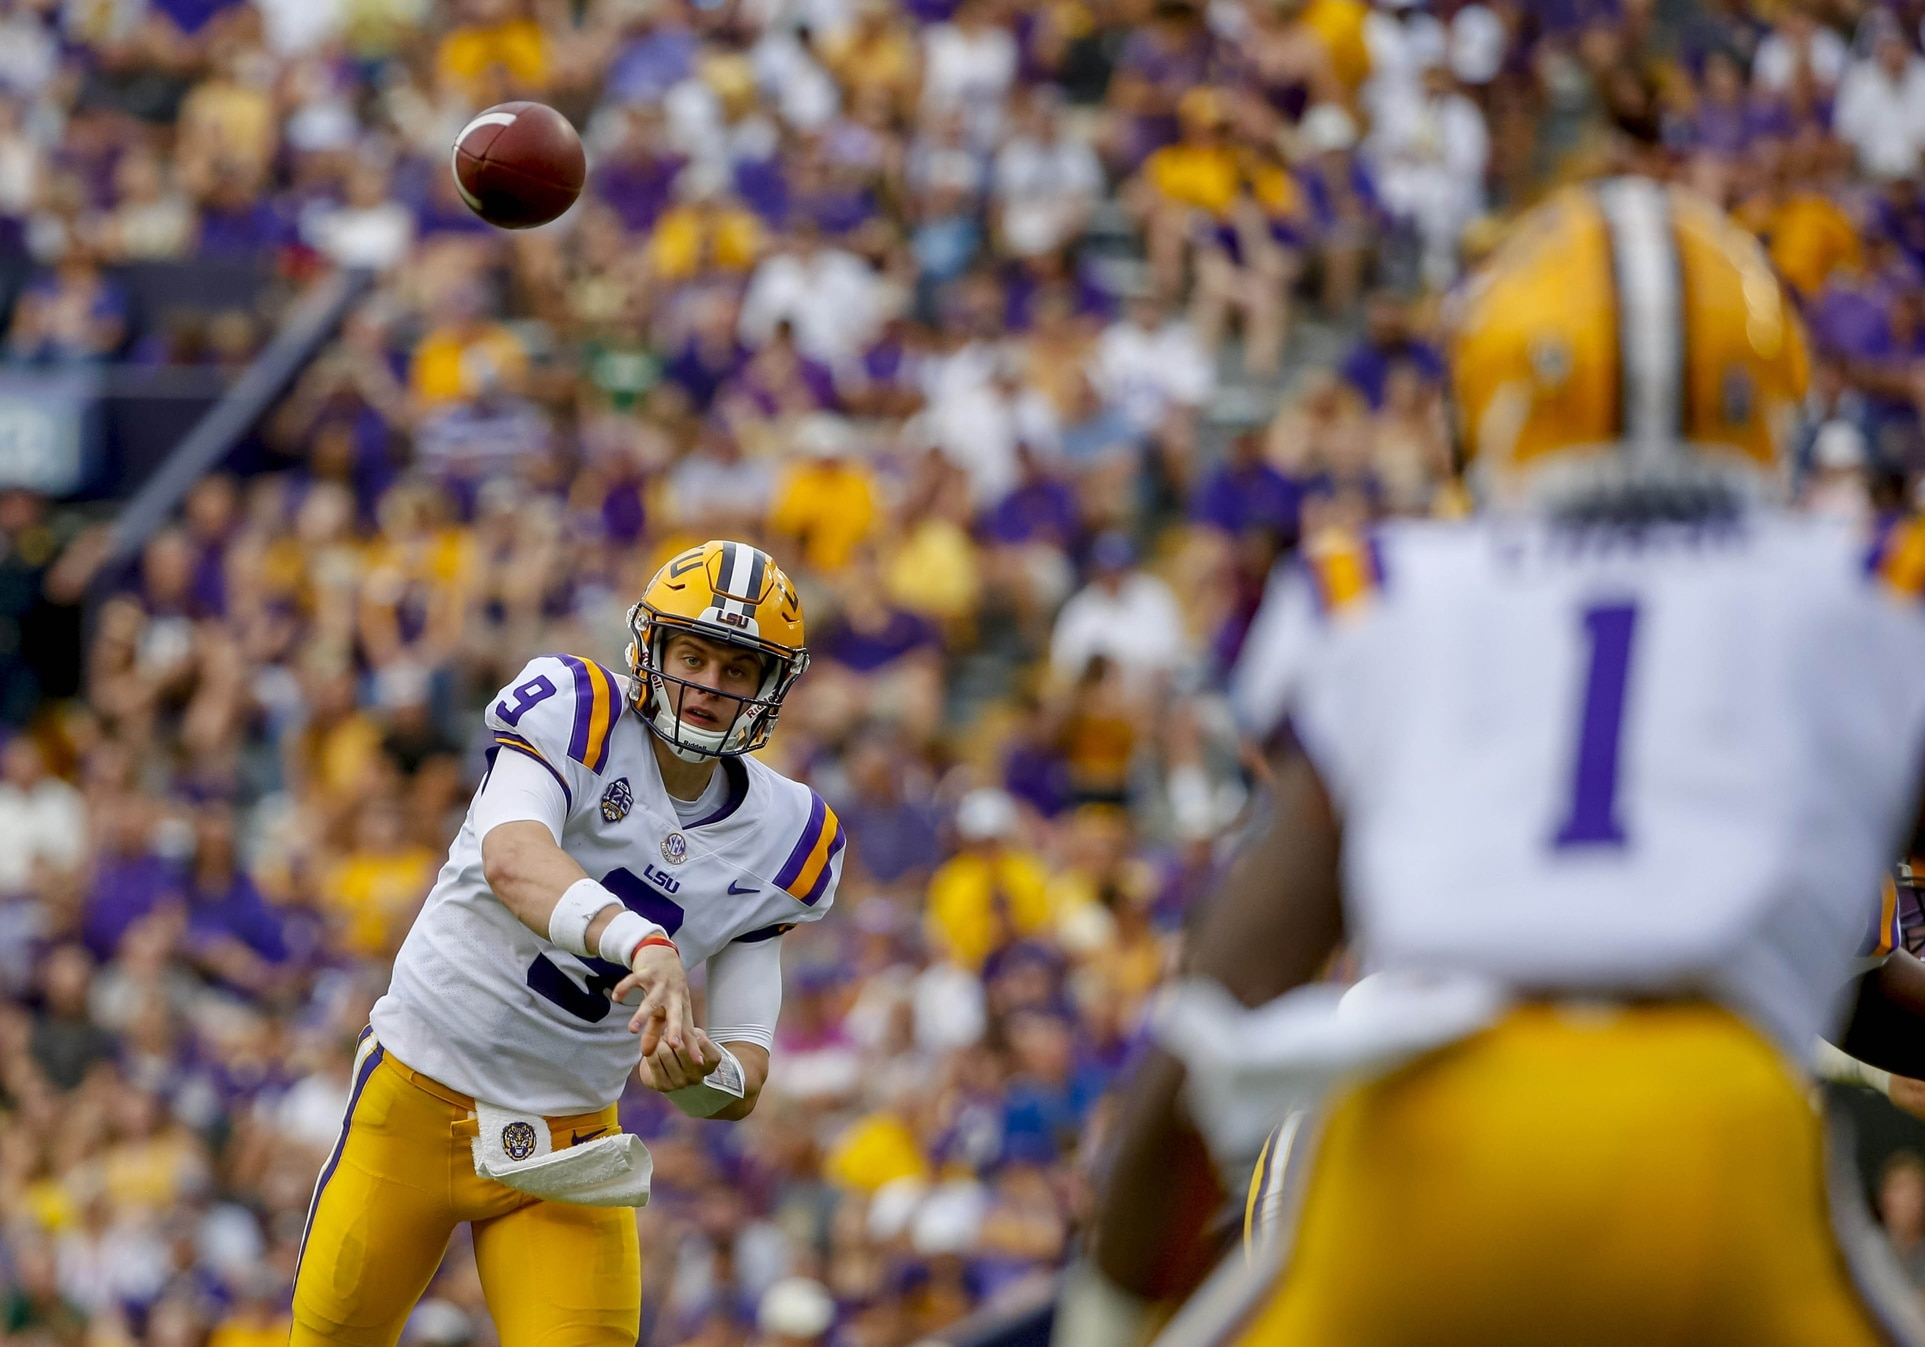 LSU Tigers vs. Texas Longhorns, 9/7/19 Predictions & Odds